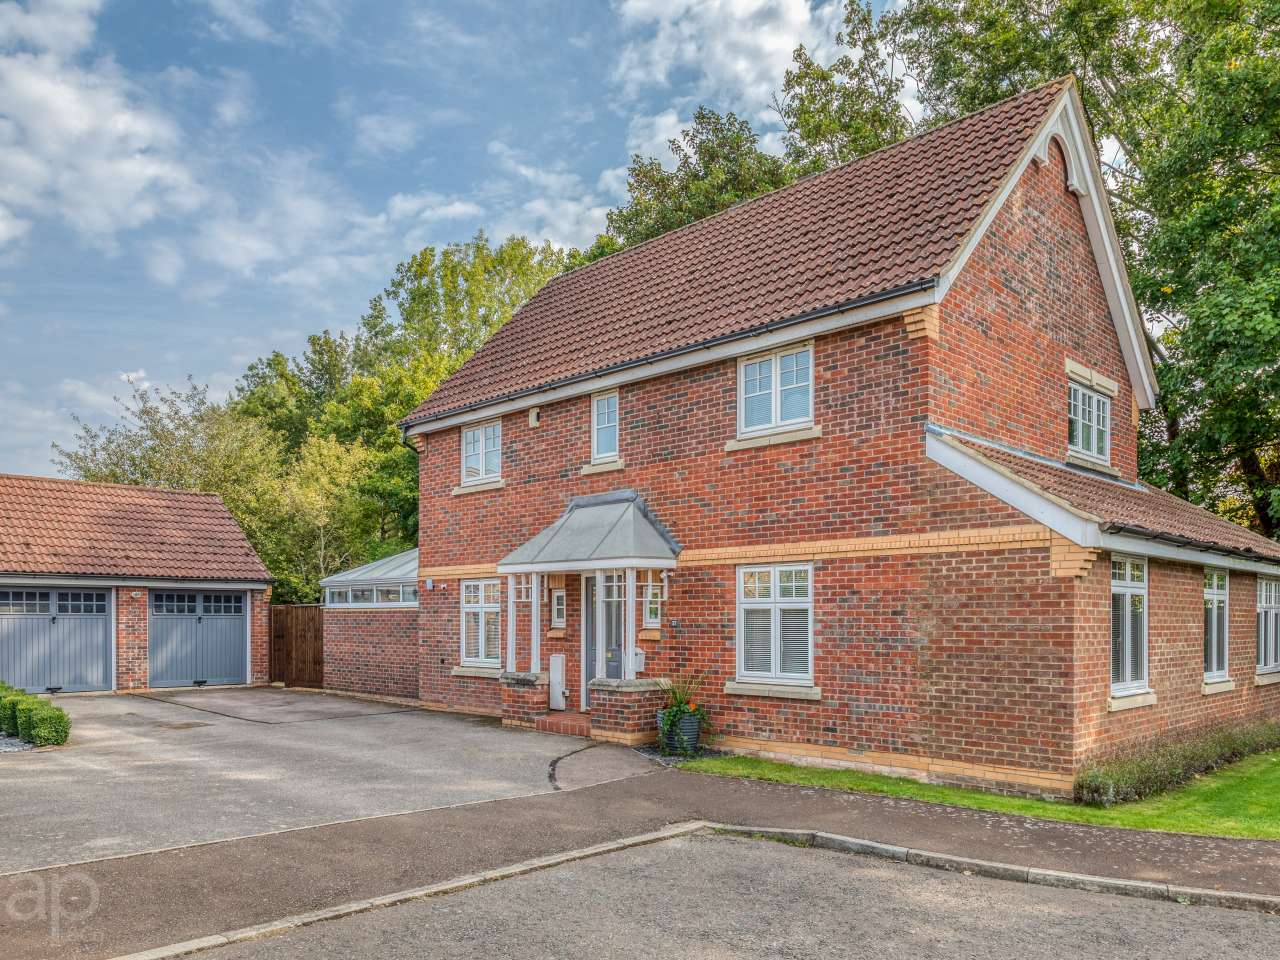 37 Elbourn Way, Bassingbourn, SG8 5UJ